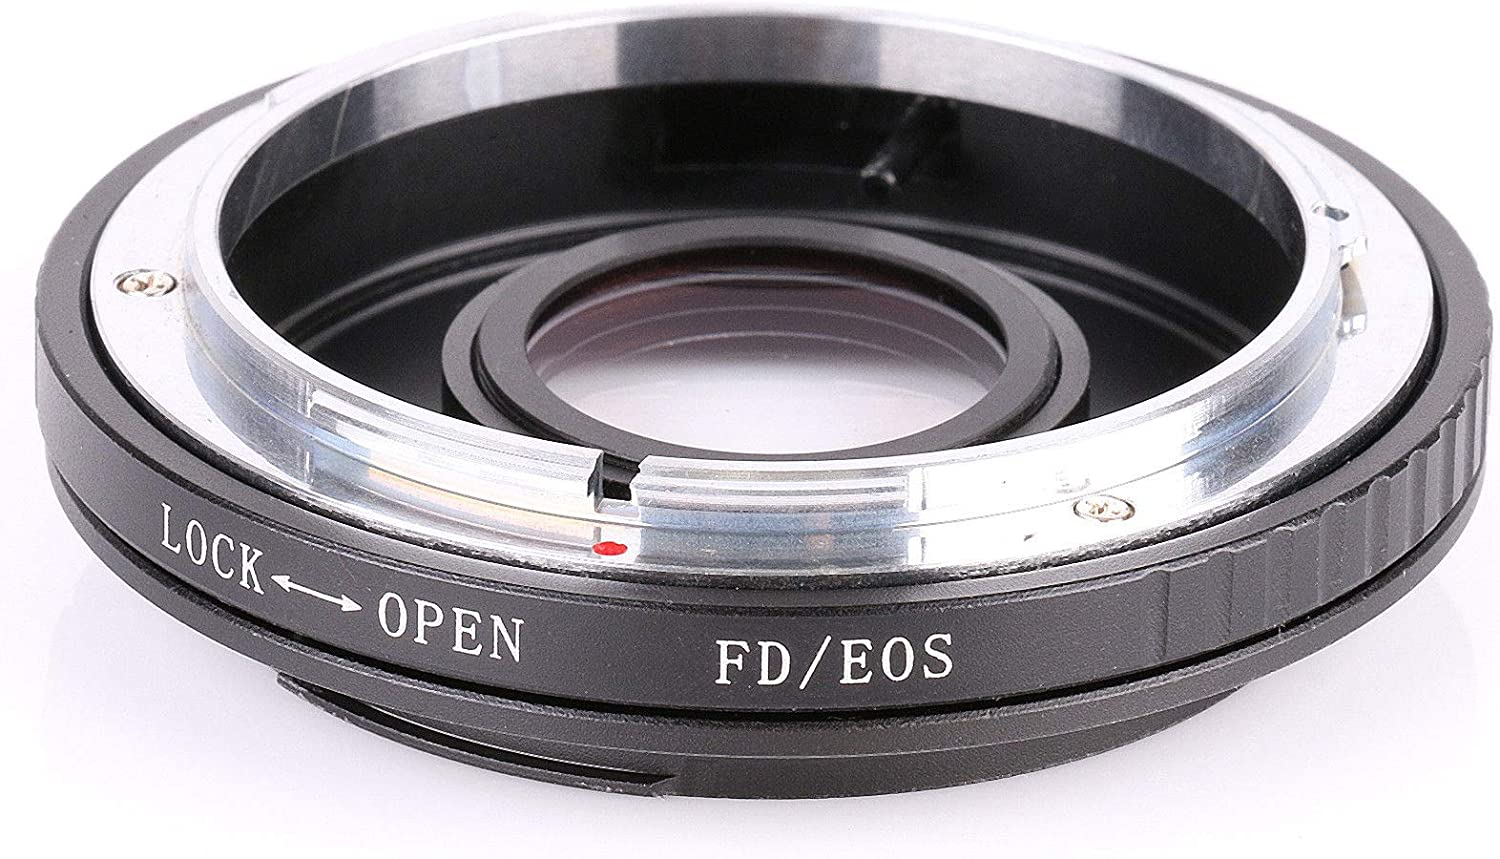 RONSHIN Camera Accessory-FD-EOS Mount Adapter for Canon FD Lens to Canon EOS EF Glass Focus Infinity